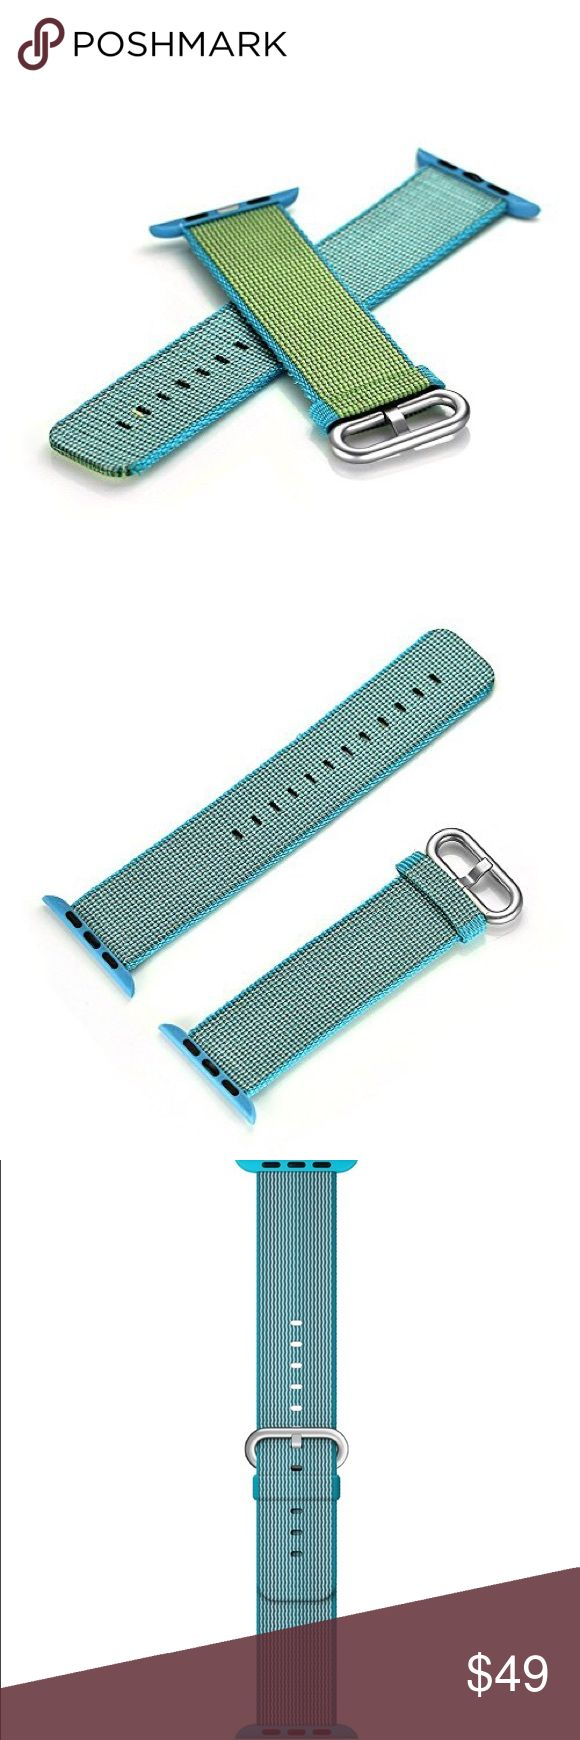 38mm Apple Watch Scuba Blue Nylon Woven Band The last picture displayed is for visual purposes only as this listing is for the sale of a 38mm Apple Watch Woven Nylon Band in Scuba Blue only and does not include the Apple Watch Silver Aluminum Case shown.   Every Woven Nylon band is made of over 500 threads woven together in a unique, colorful pattern.  Monofilaments connect four layers of the weave to create a single durable band with a comfortable, fabric-like feel.  Fits 145-215mm wrists…